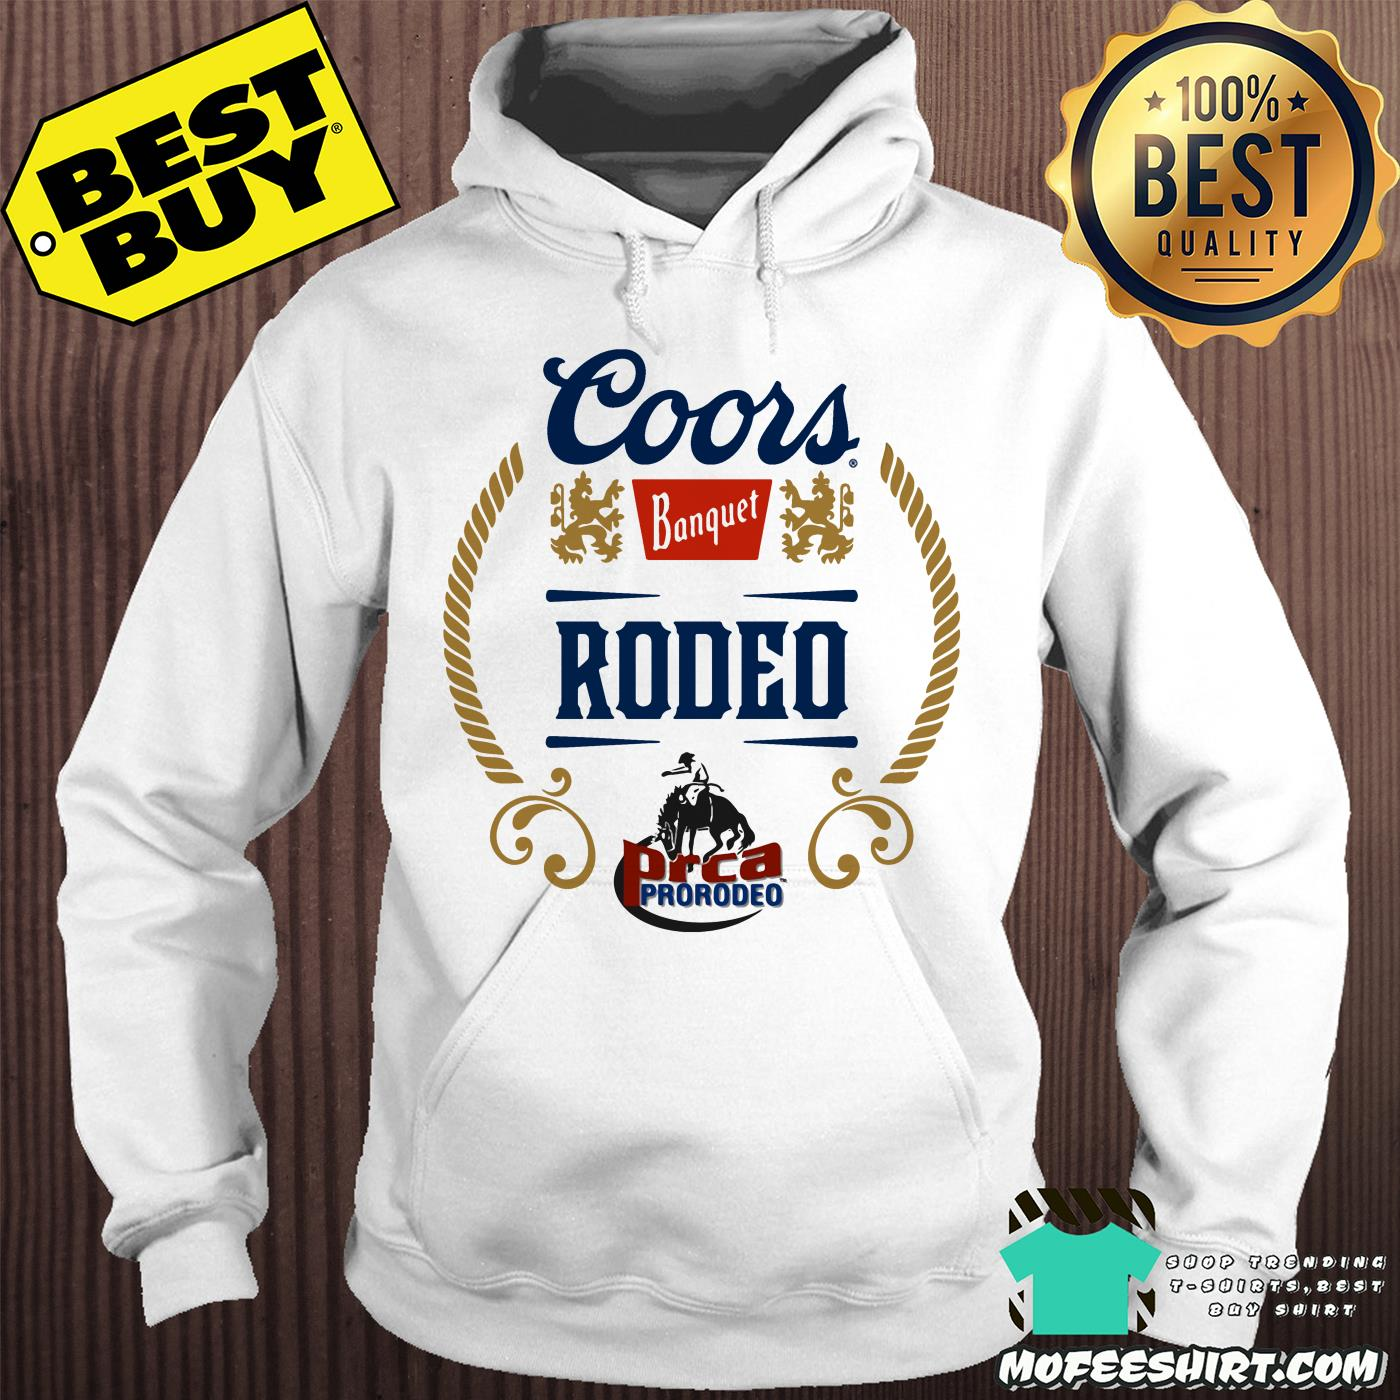 coors banquet rodeo prca prorodeo vintage hoodie - Coors Banquet Rodeo PRCA Prorodeo Vintage shirt